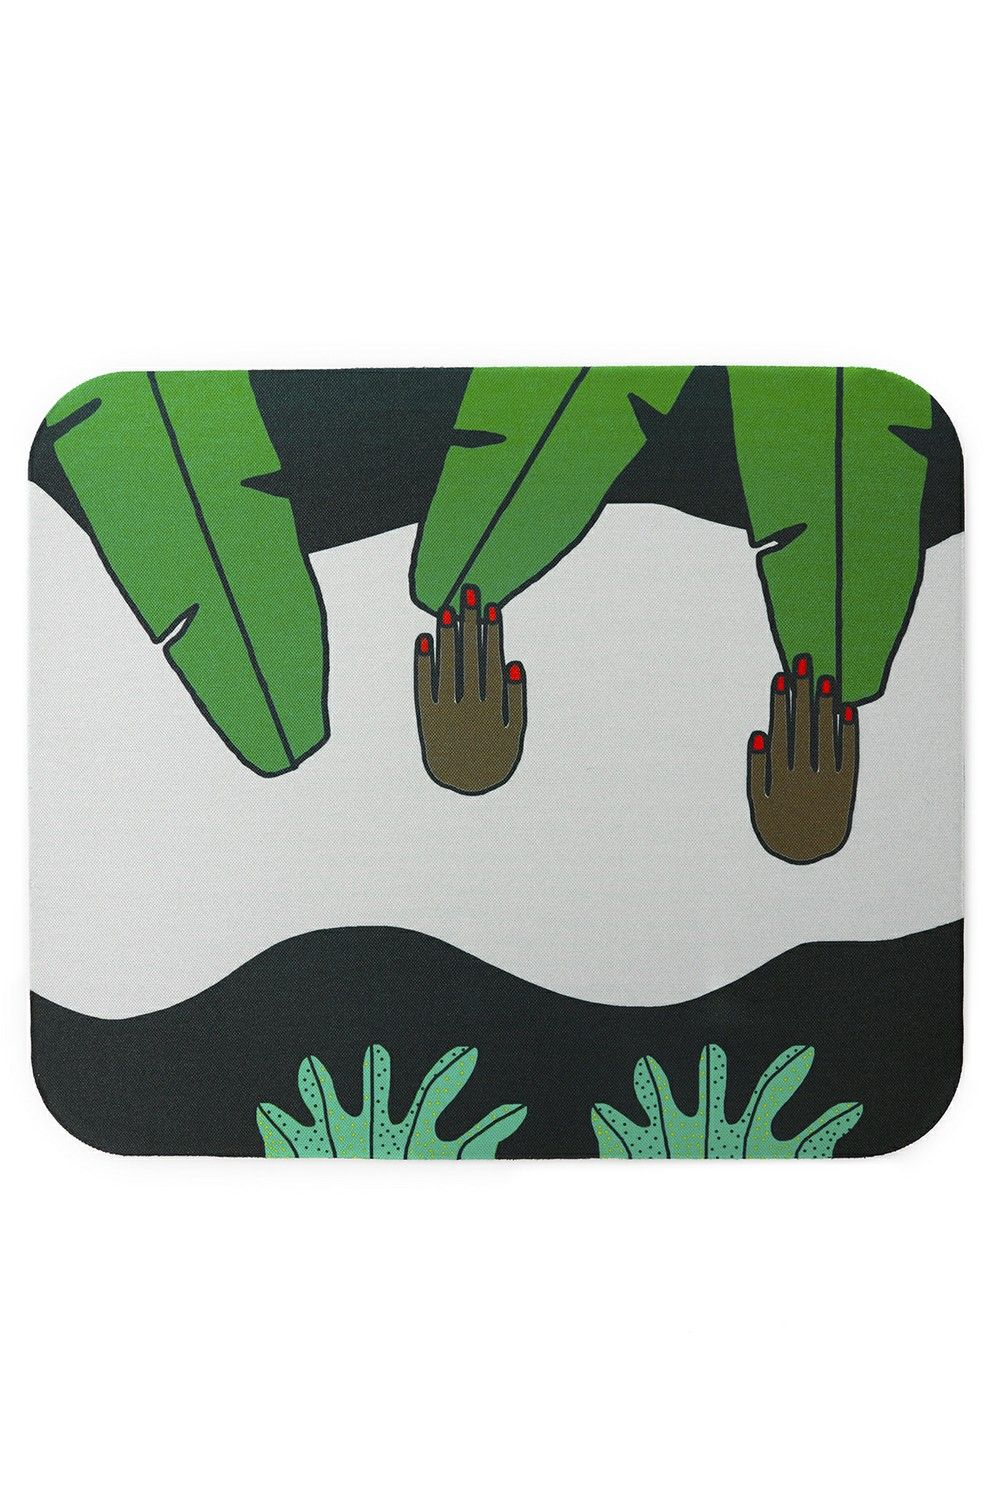 Hand Touching Plants Mouse Pad Via Bfgfshop Click On The